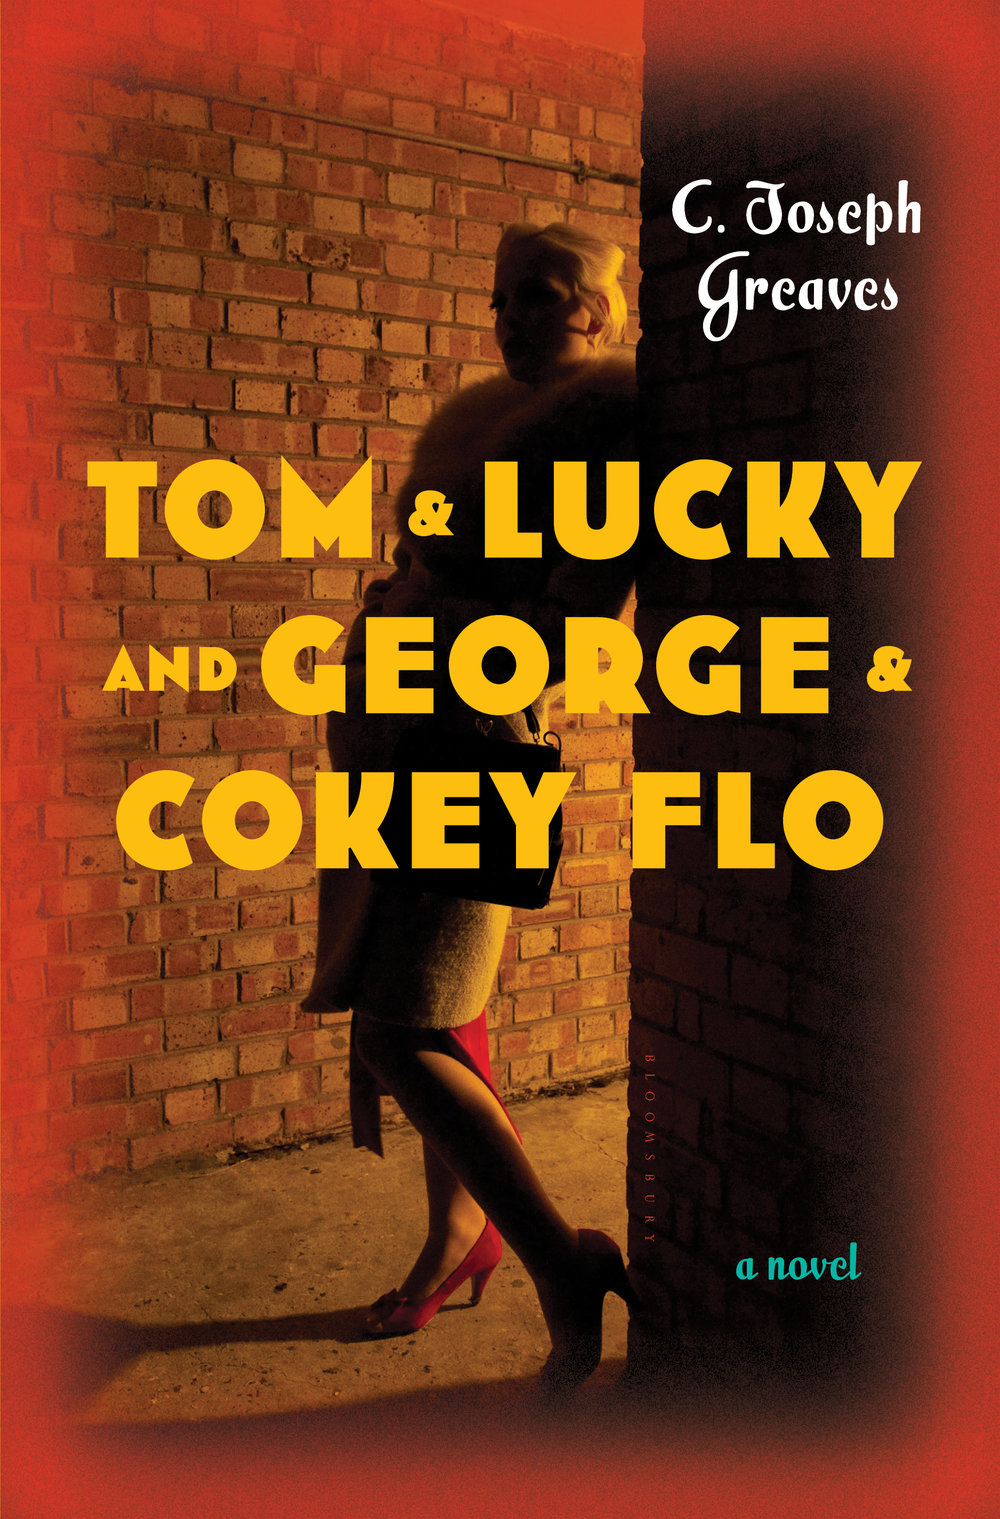 TOM & LUCKY AND GEORGE & COKEY FLO